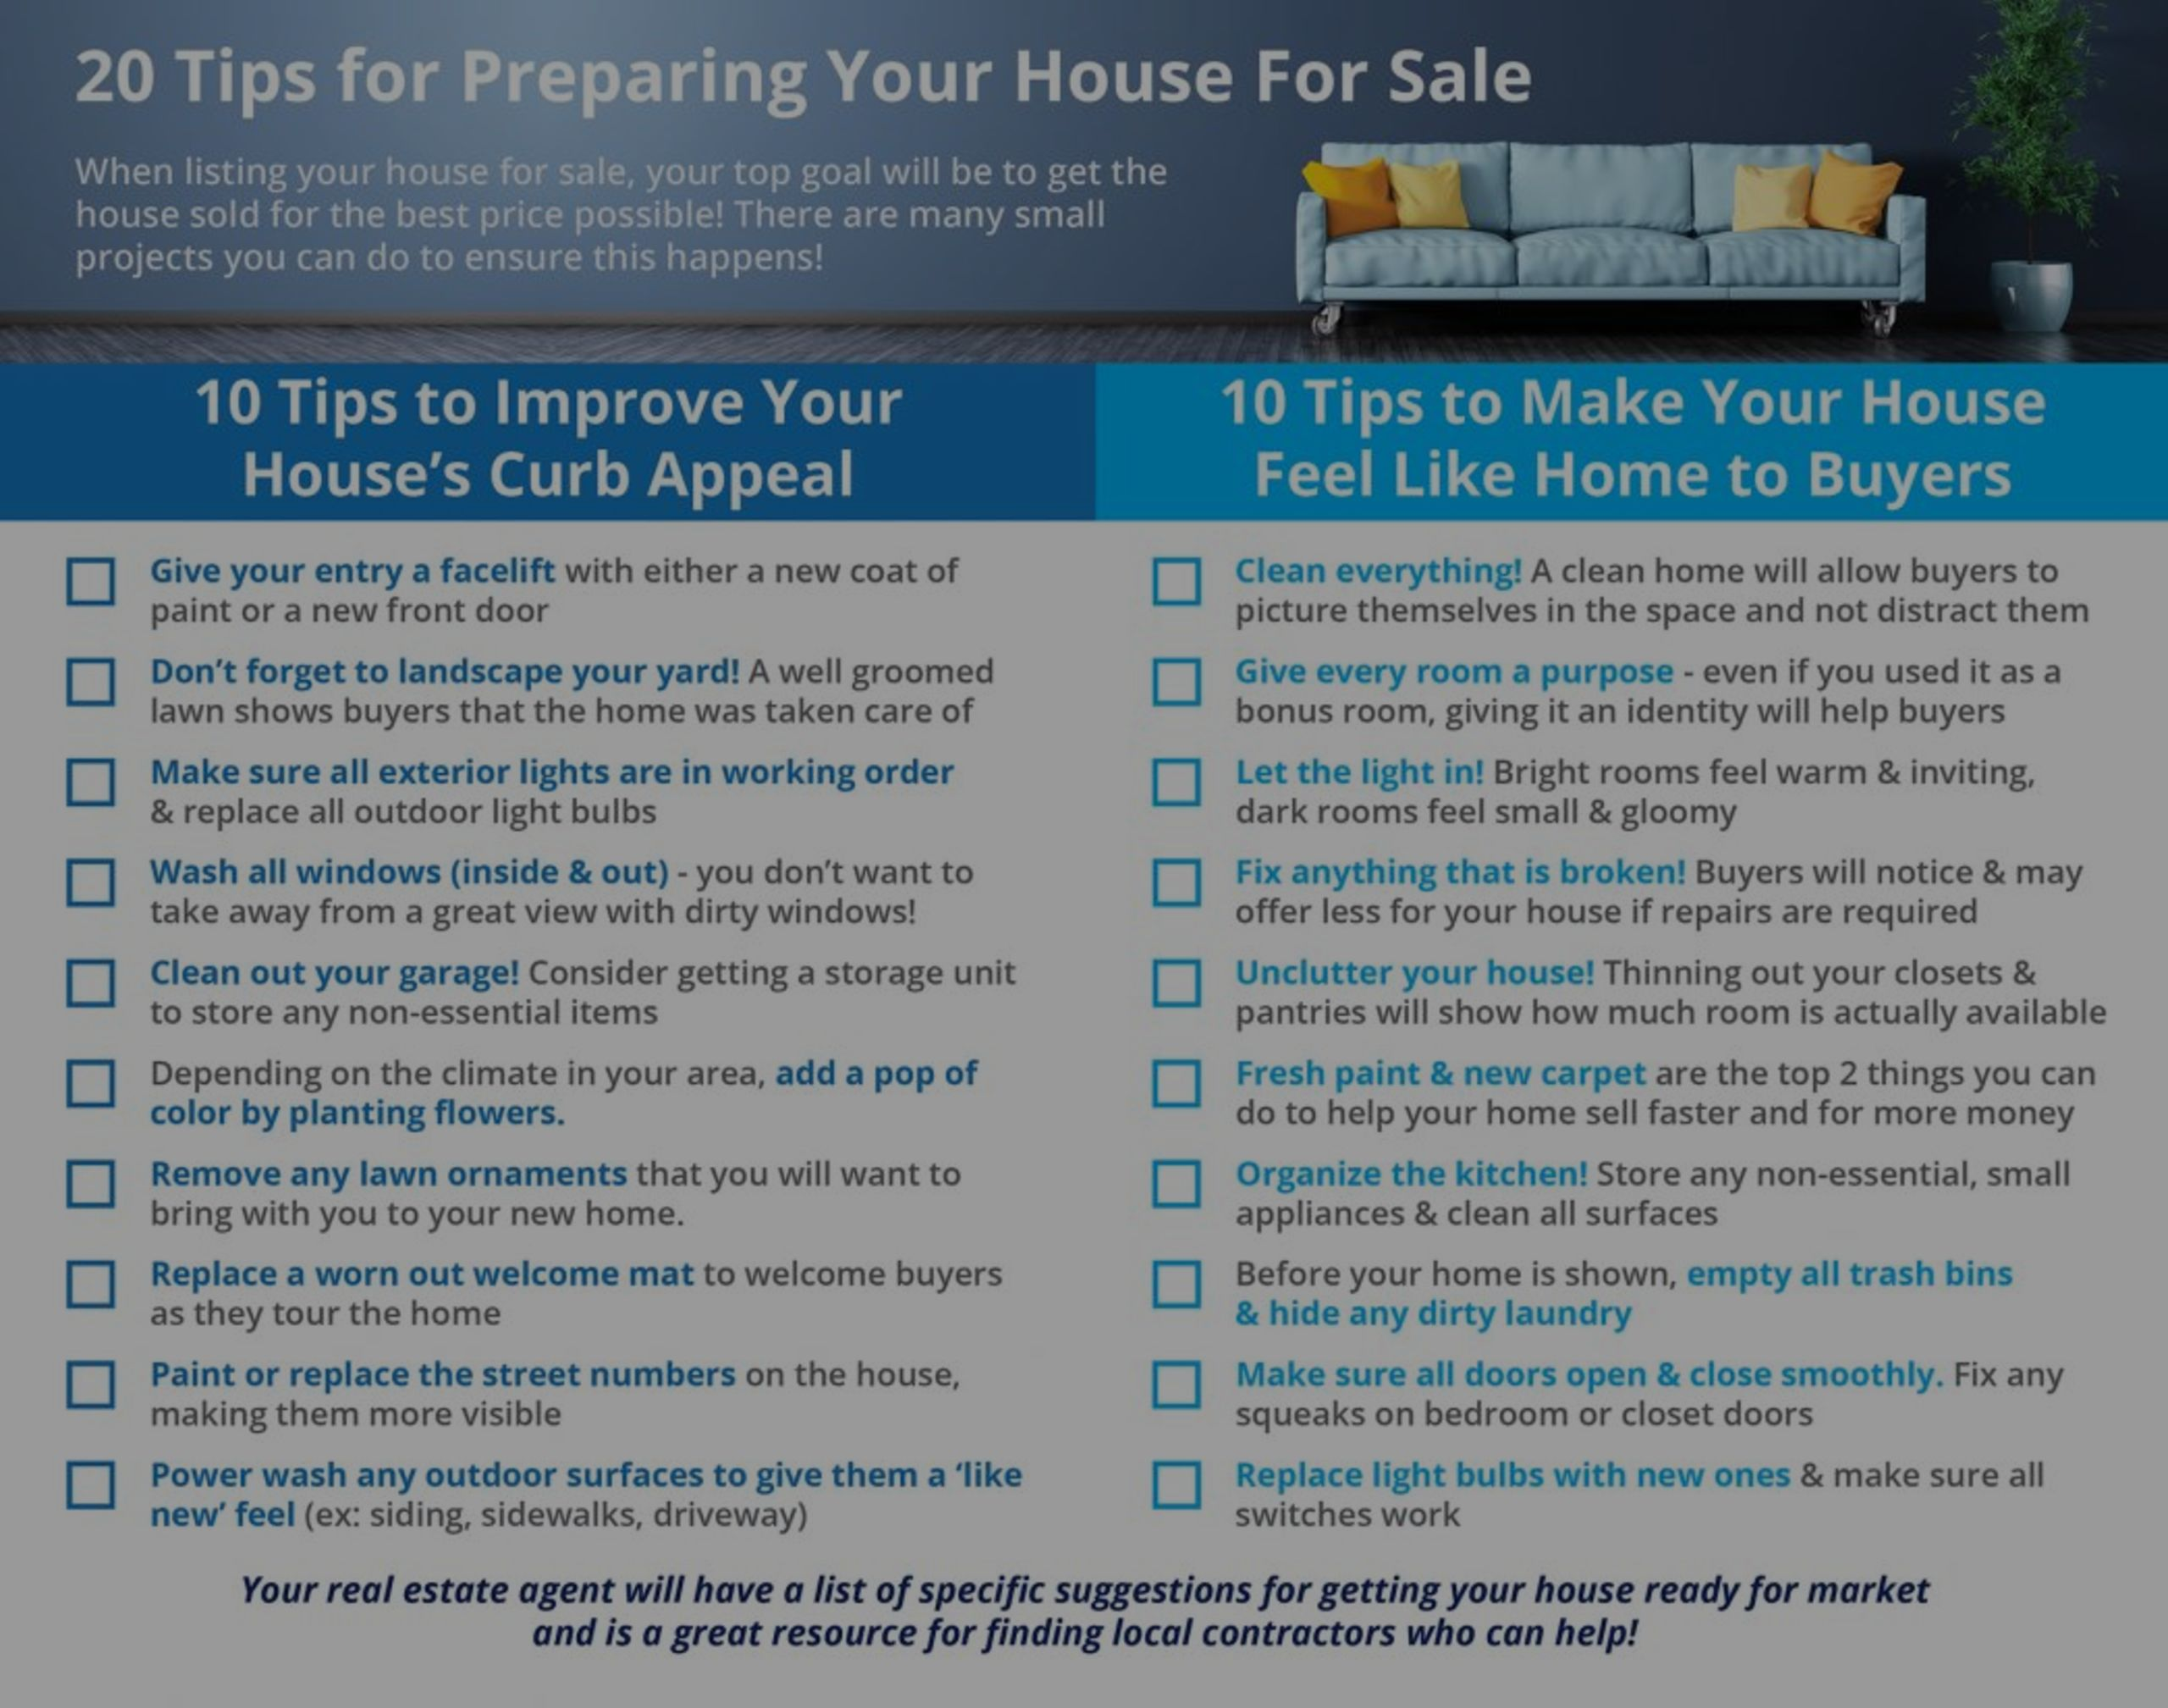 20 Tips for Preparing Your Home for Sale this Spring